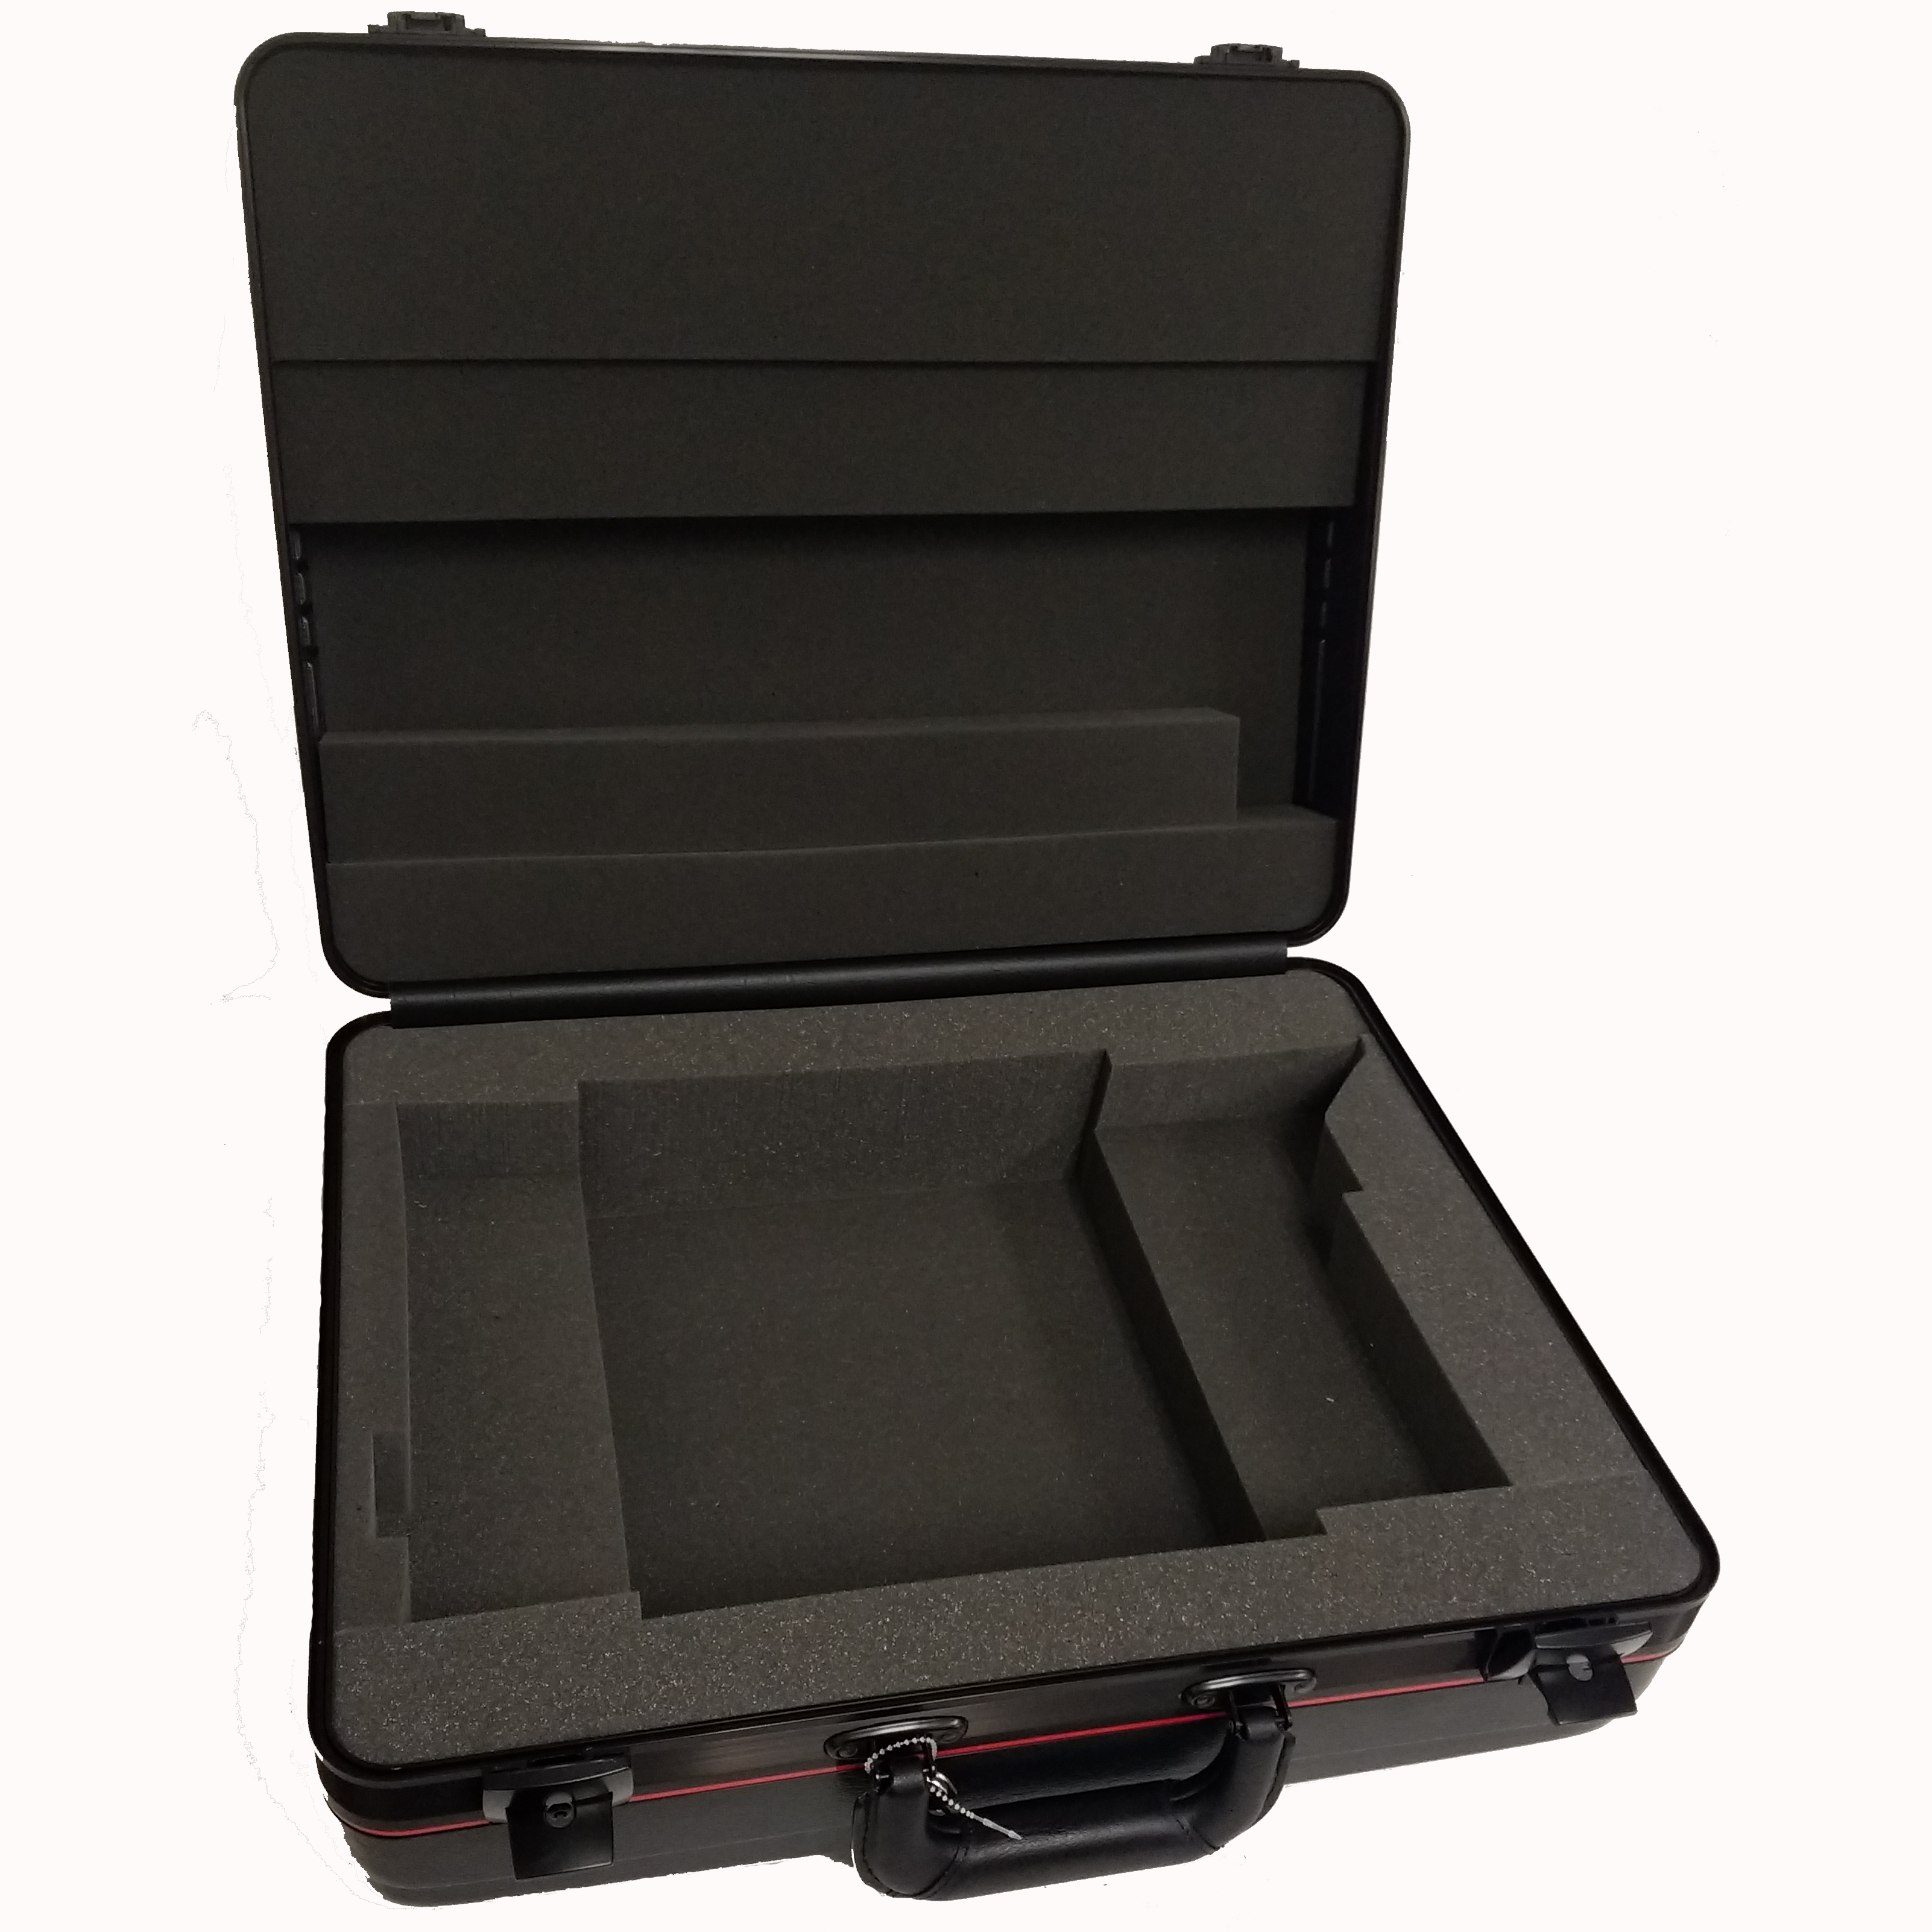 (EN-1684) Daktronics Hard Carrying Case for All Sport 3000, 4000, and 5000 Controllers Also fits Fair-Play MP-69 1